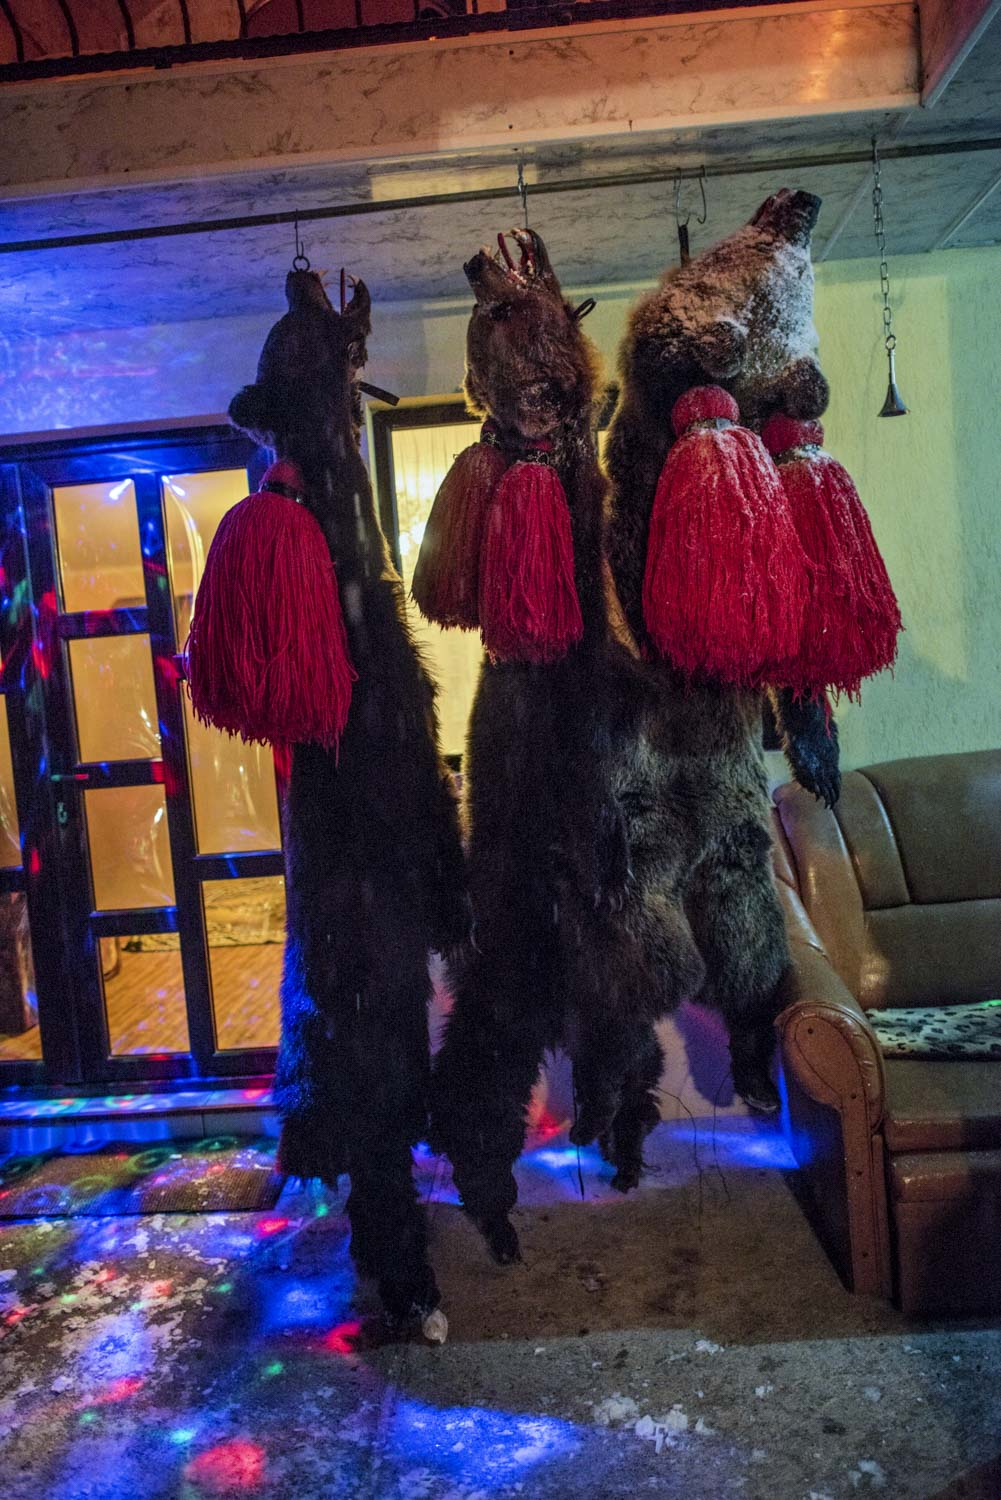 At the end of each night, bear skins hang from hooks on the ceiling of Tolaocă's front porch. December 28, 2014. Laloaia village, Bacău county, Romania.